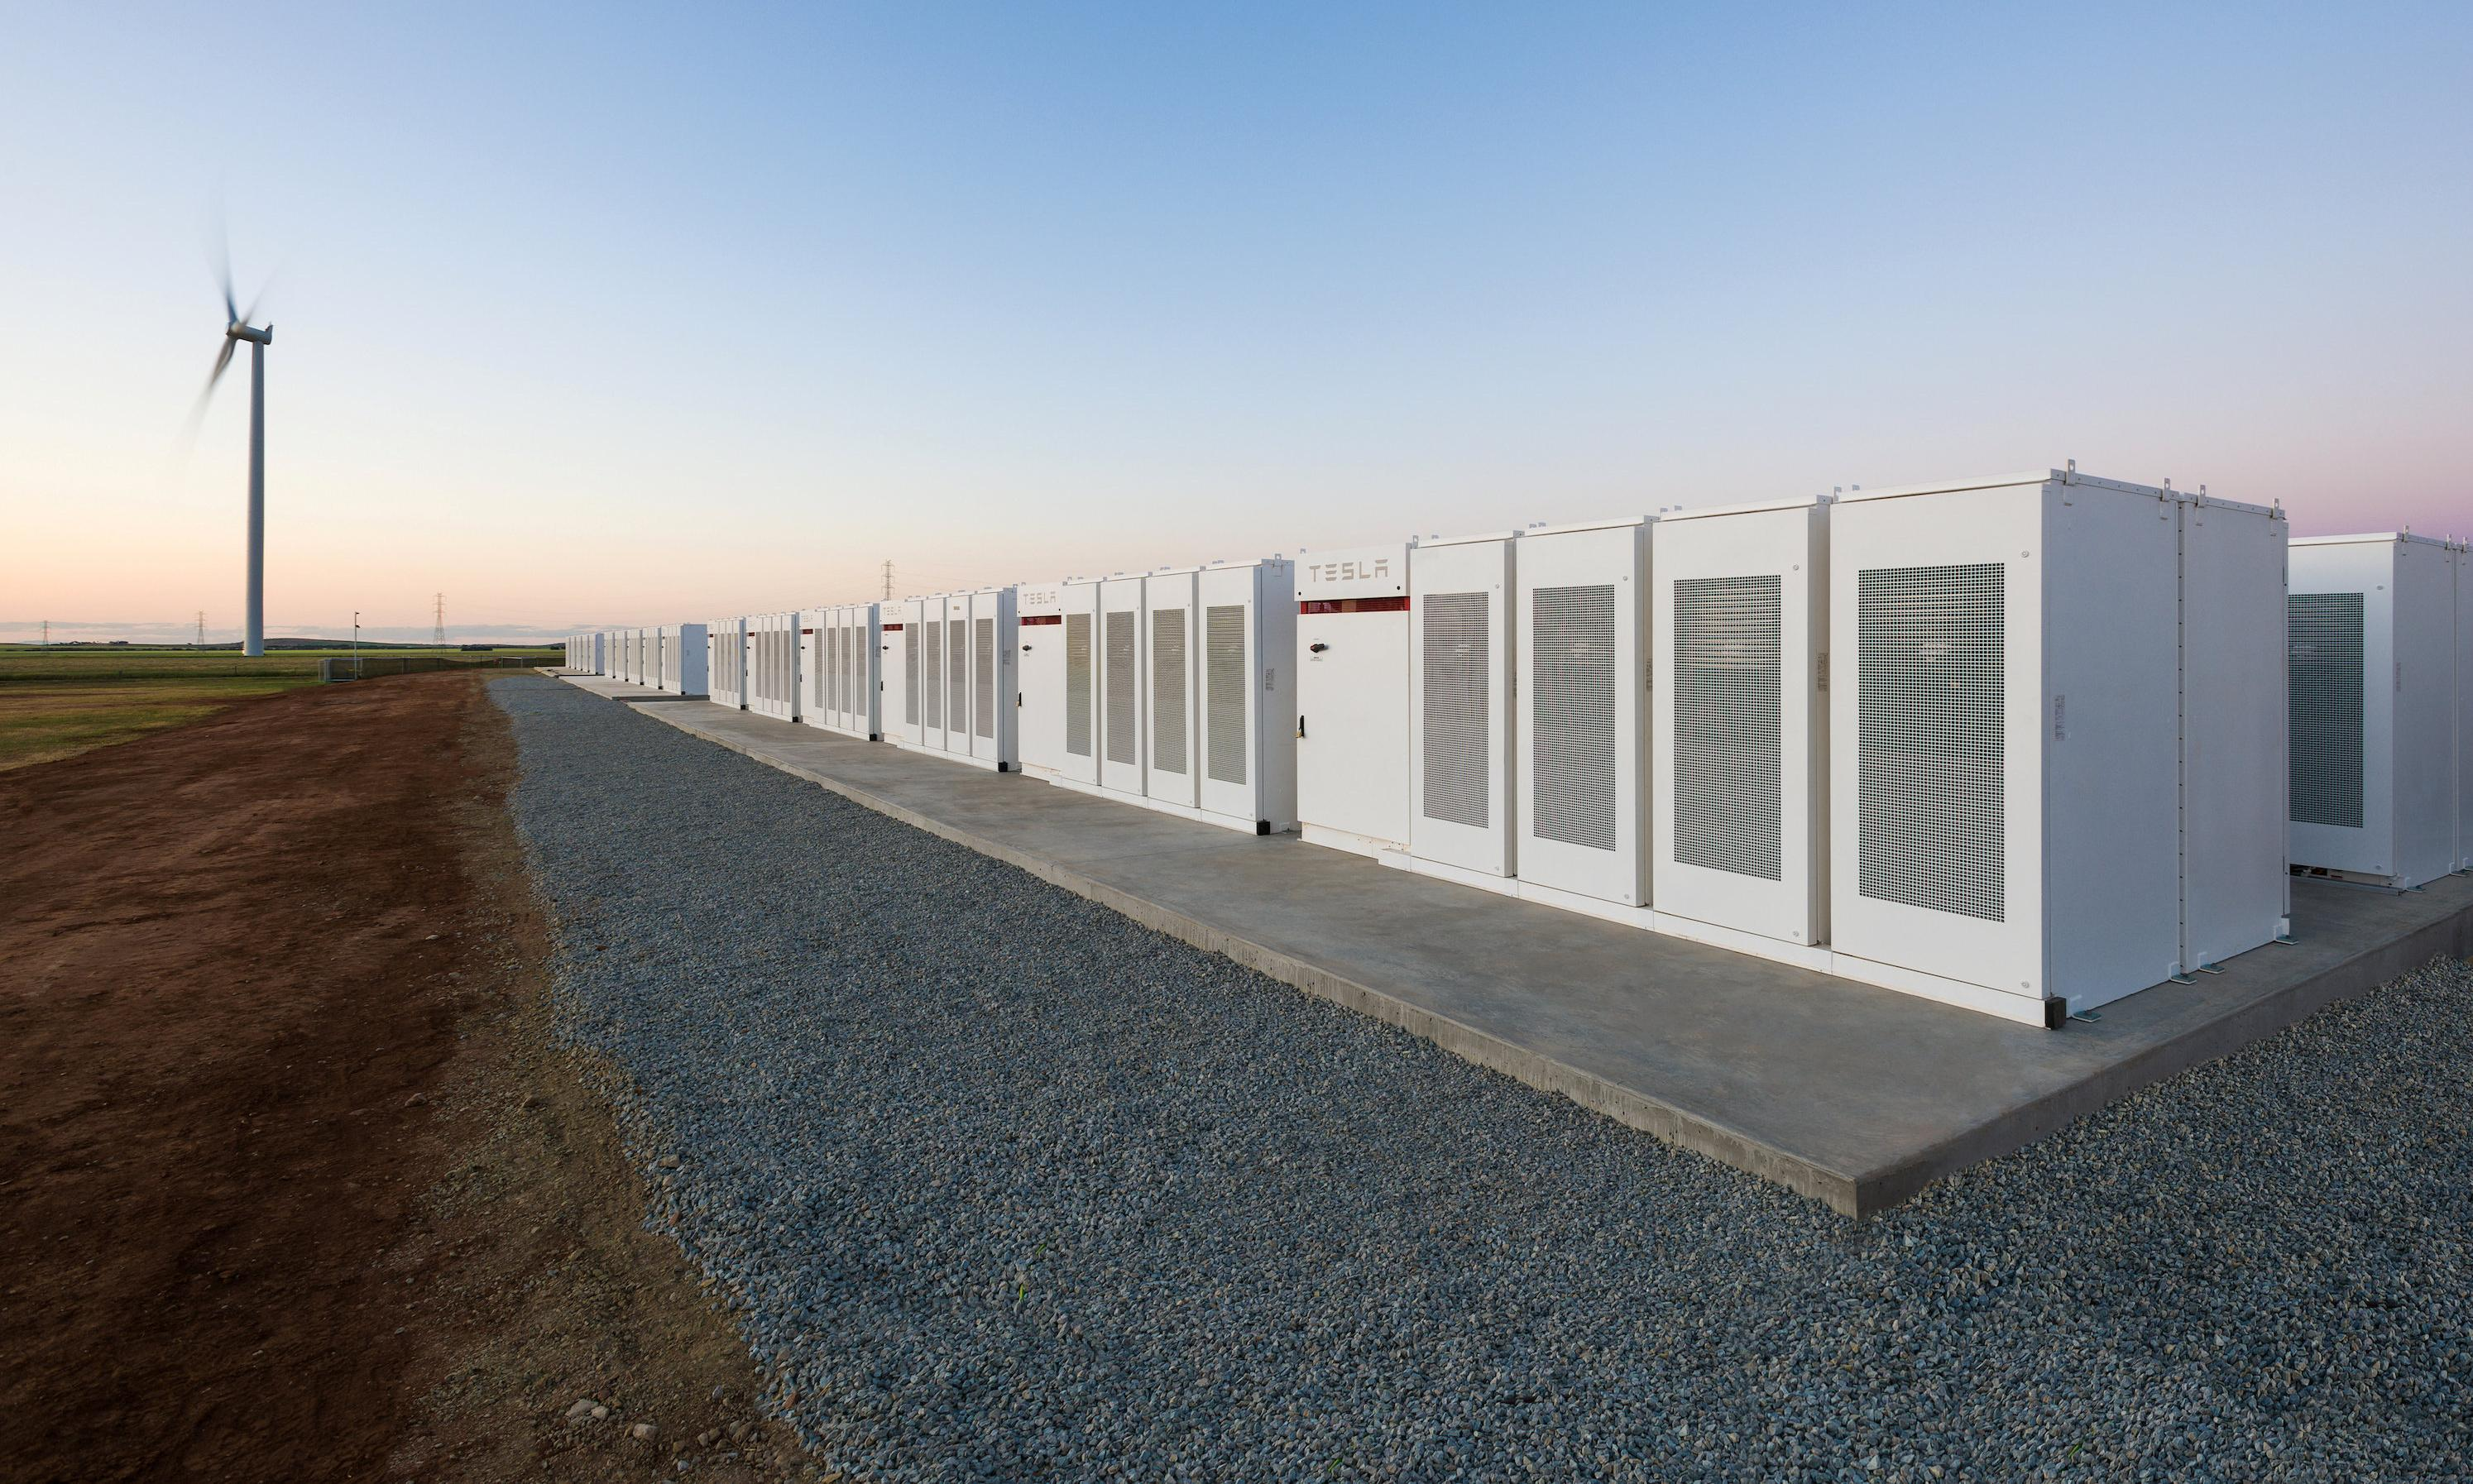 Tesla big battery is holding its own in a burgeoning energy storage market